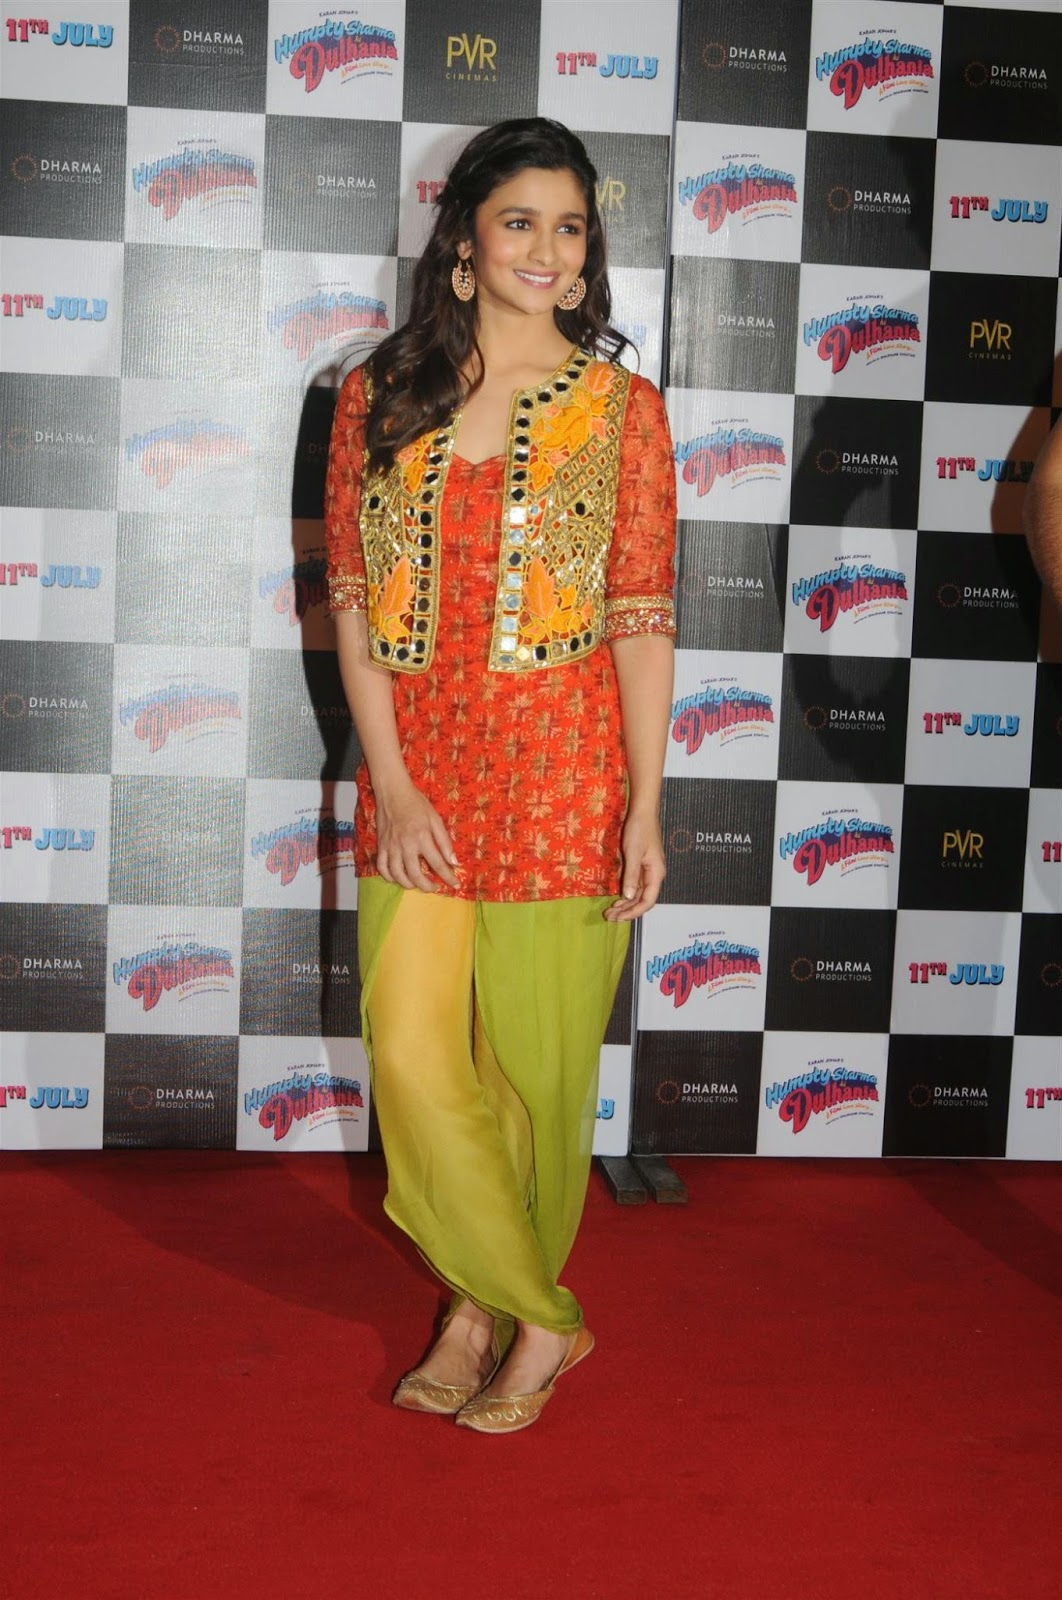 High Quality Bollywood Celebrity Pictures Alia Bhatt -6681